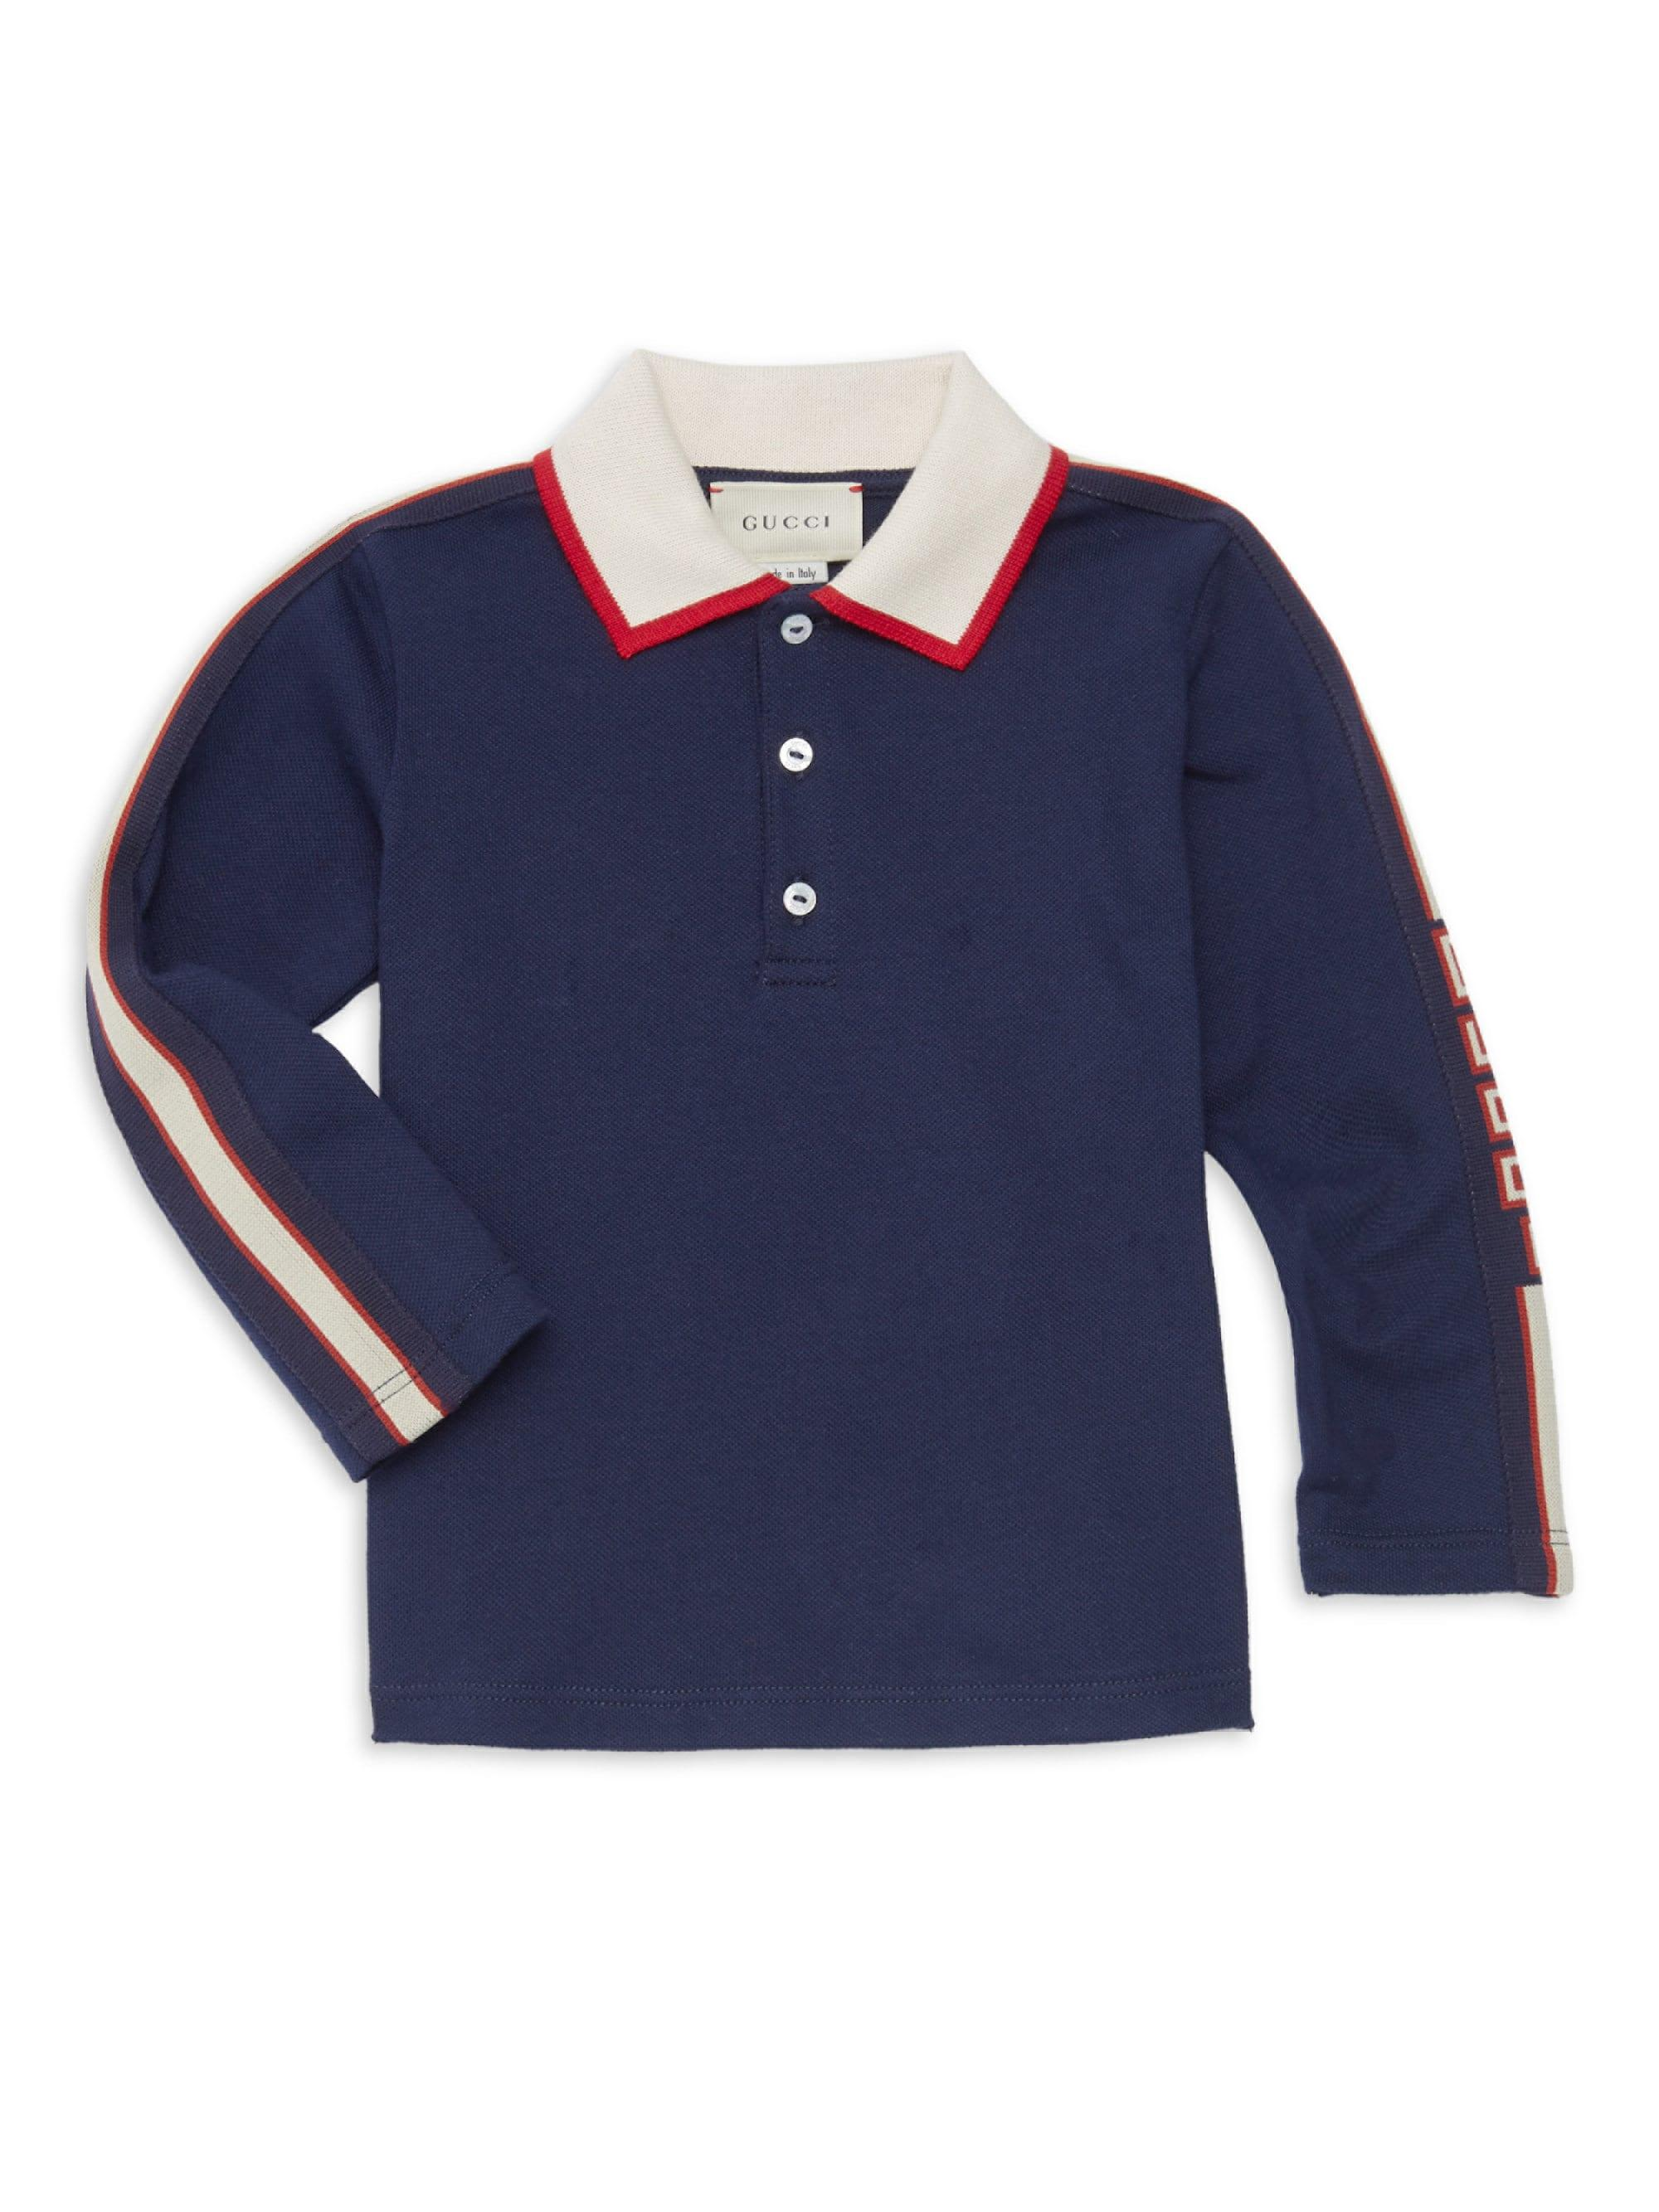 9888cb1de4b5 Gucci Baby Boy's Collared Long-sleeve Shirt in Blue for Men - Lyst